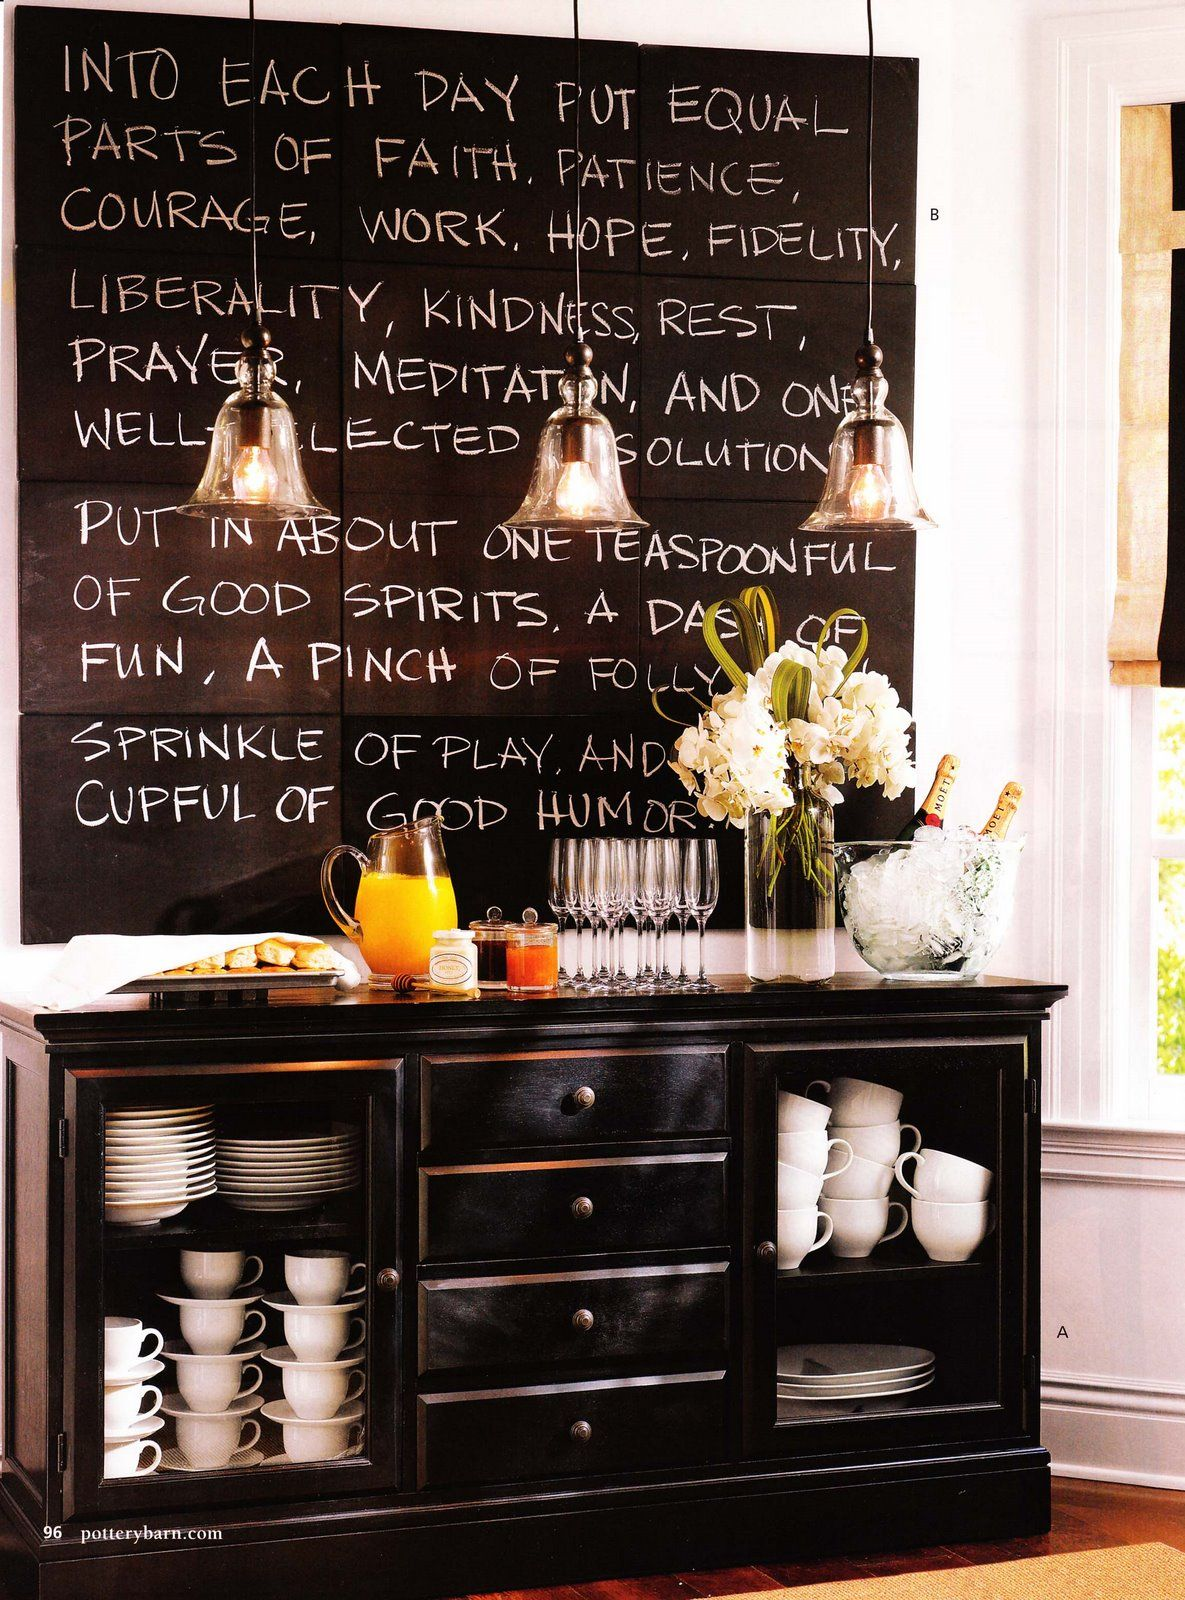 chalkboard wall decor kitchen miserv - Kitchen Chalkboard Ideas